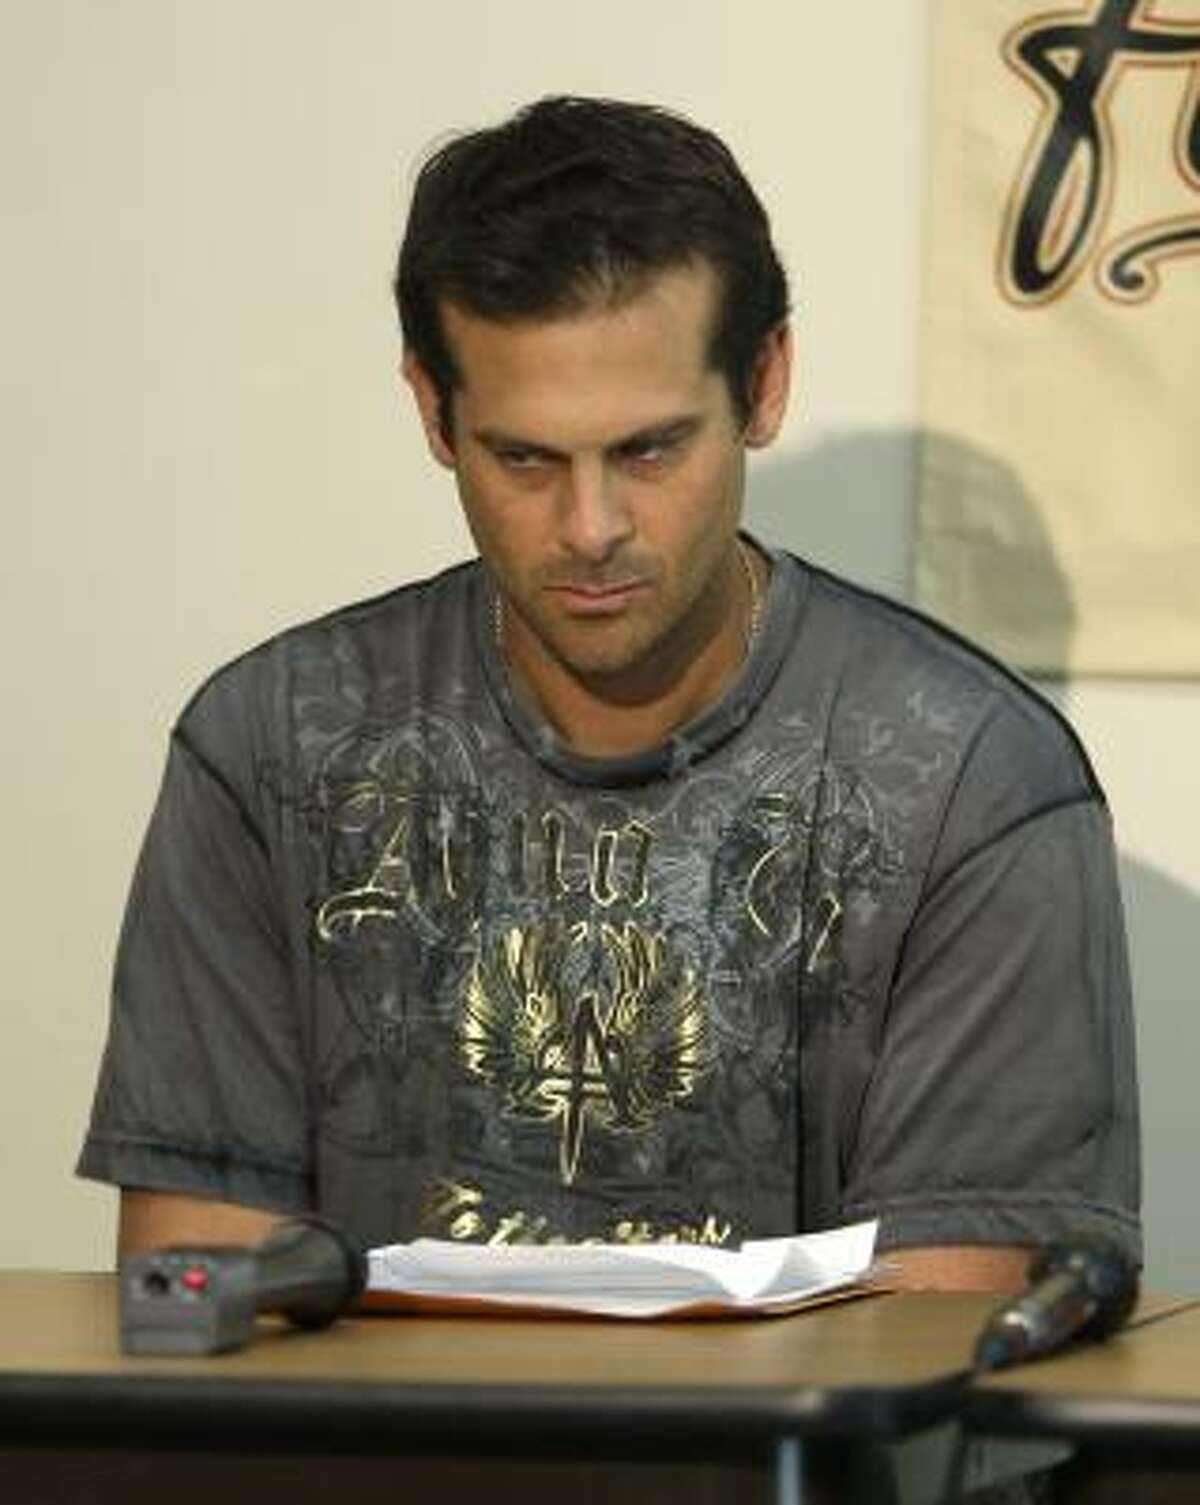 The Astros' day started with a news conference where Aaron Boone announced his need to undergo open heart surgery.